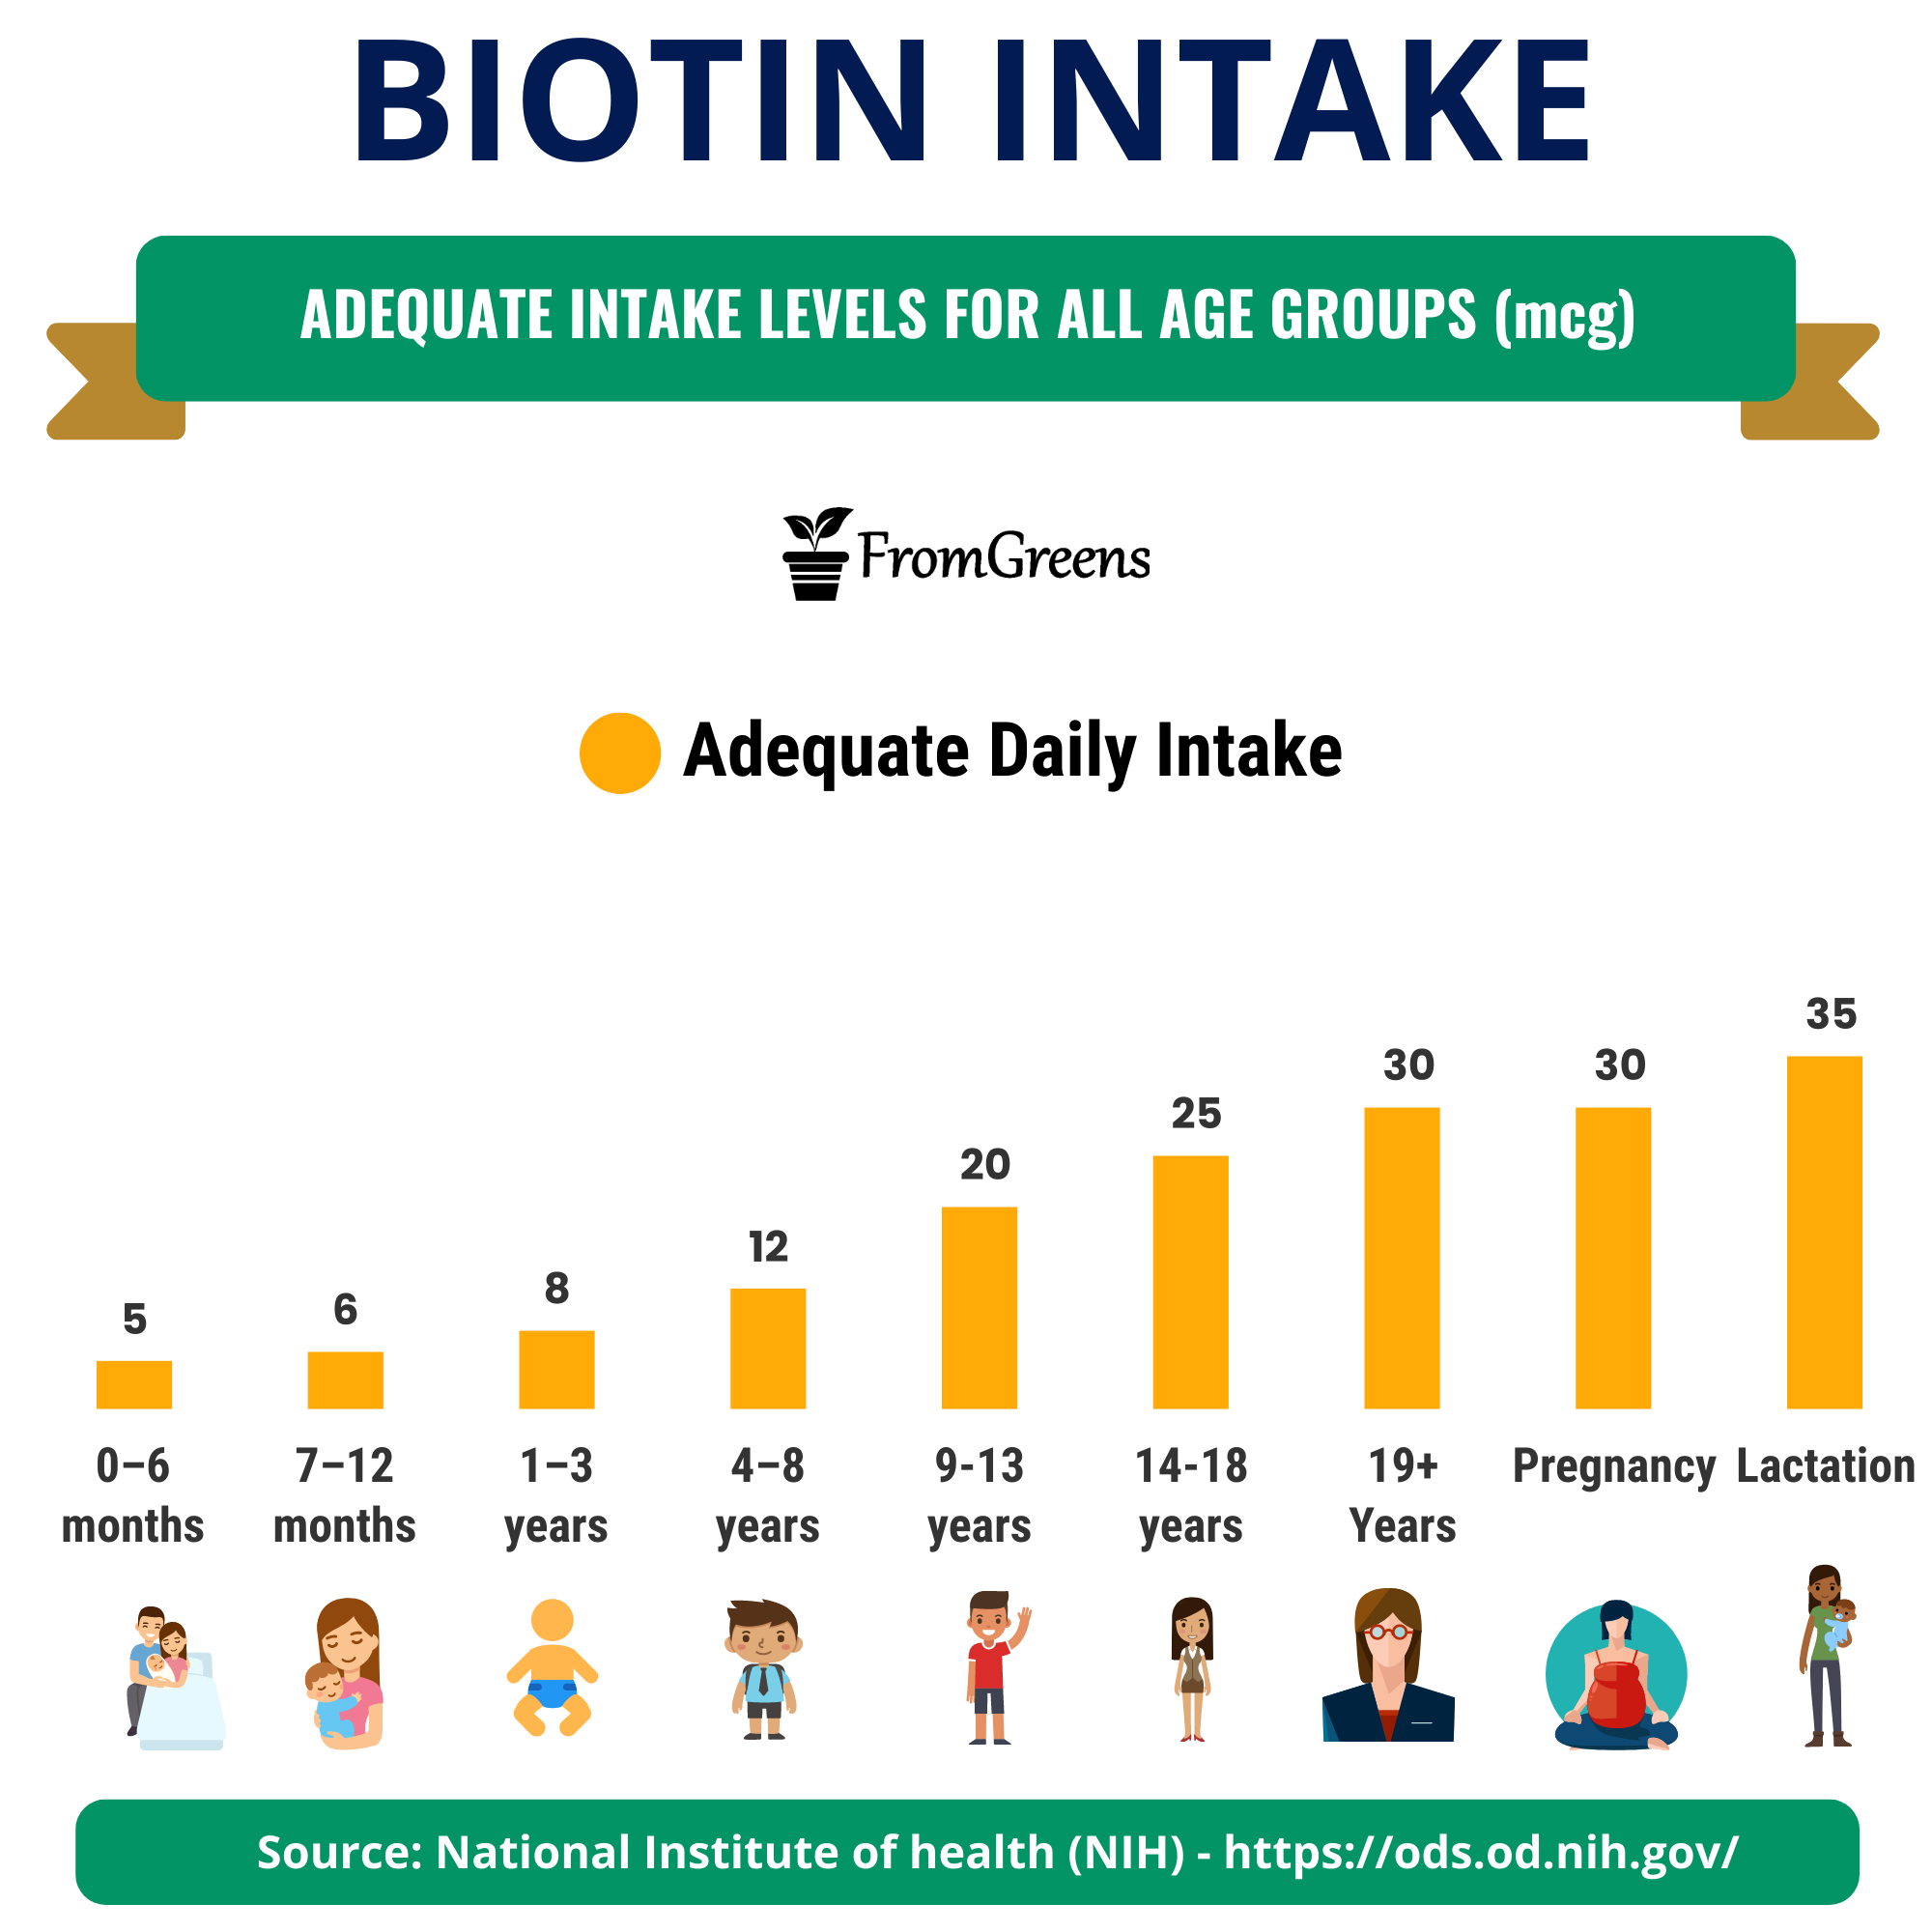 how much biotin is recommended daily